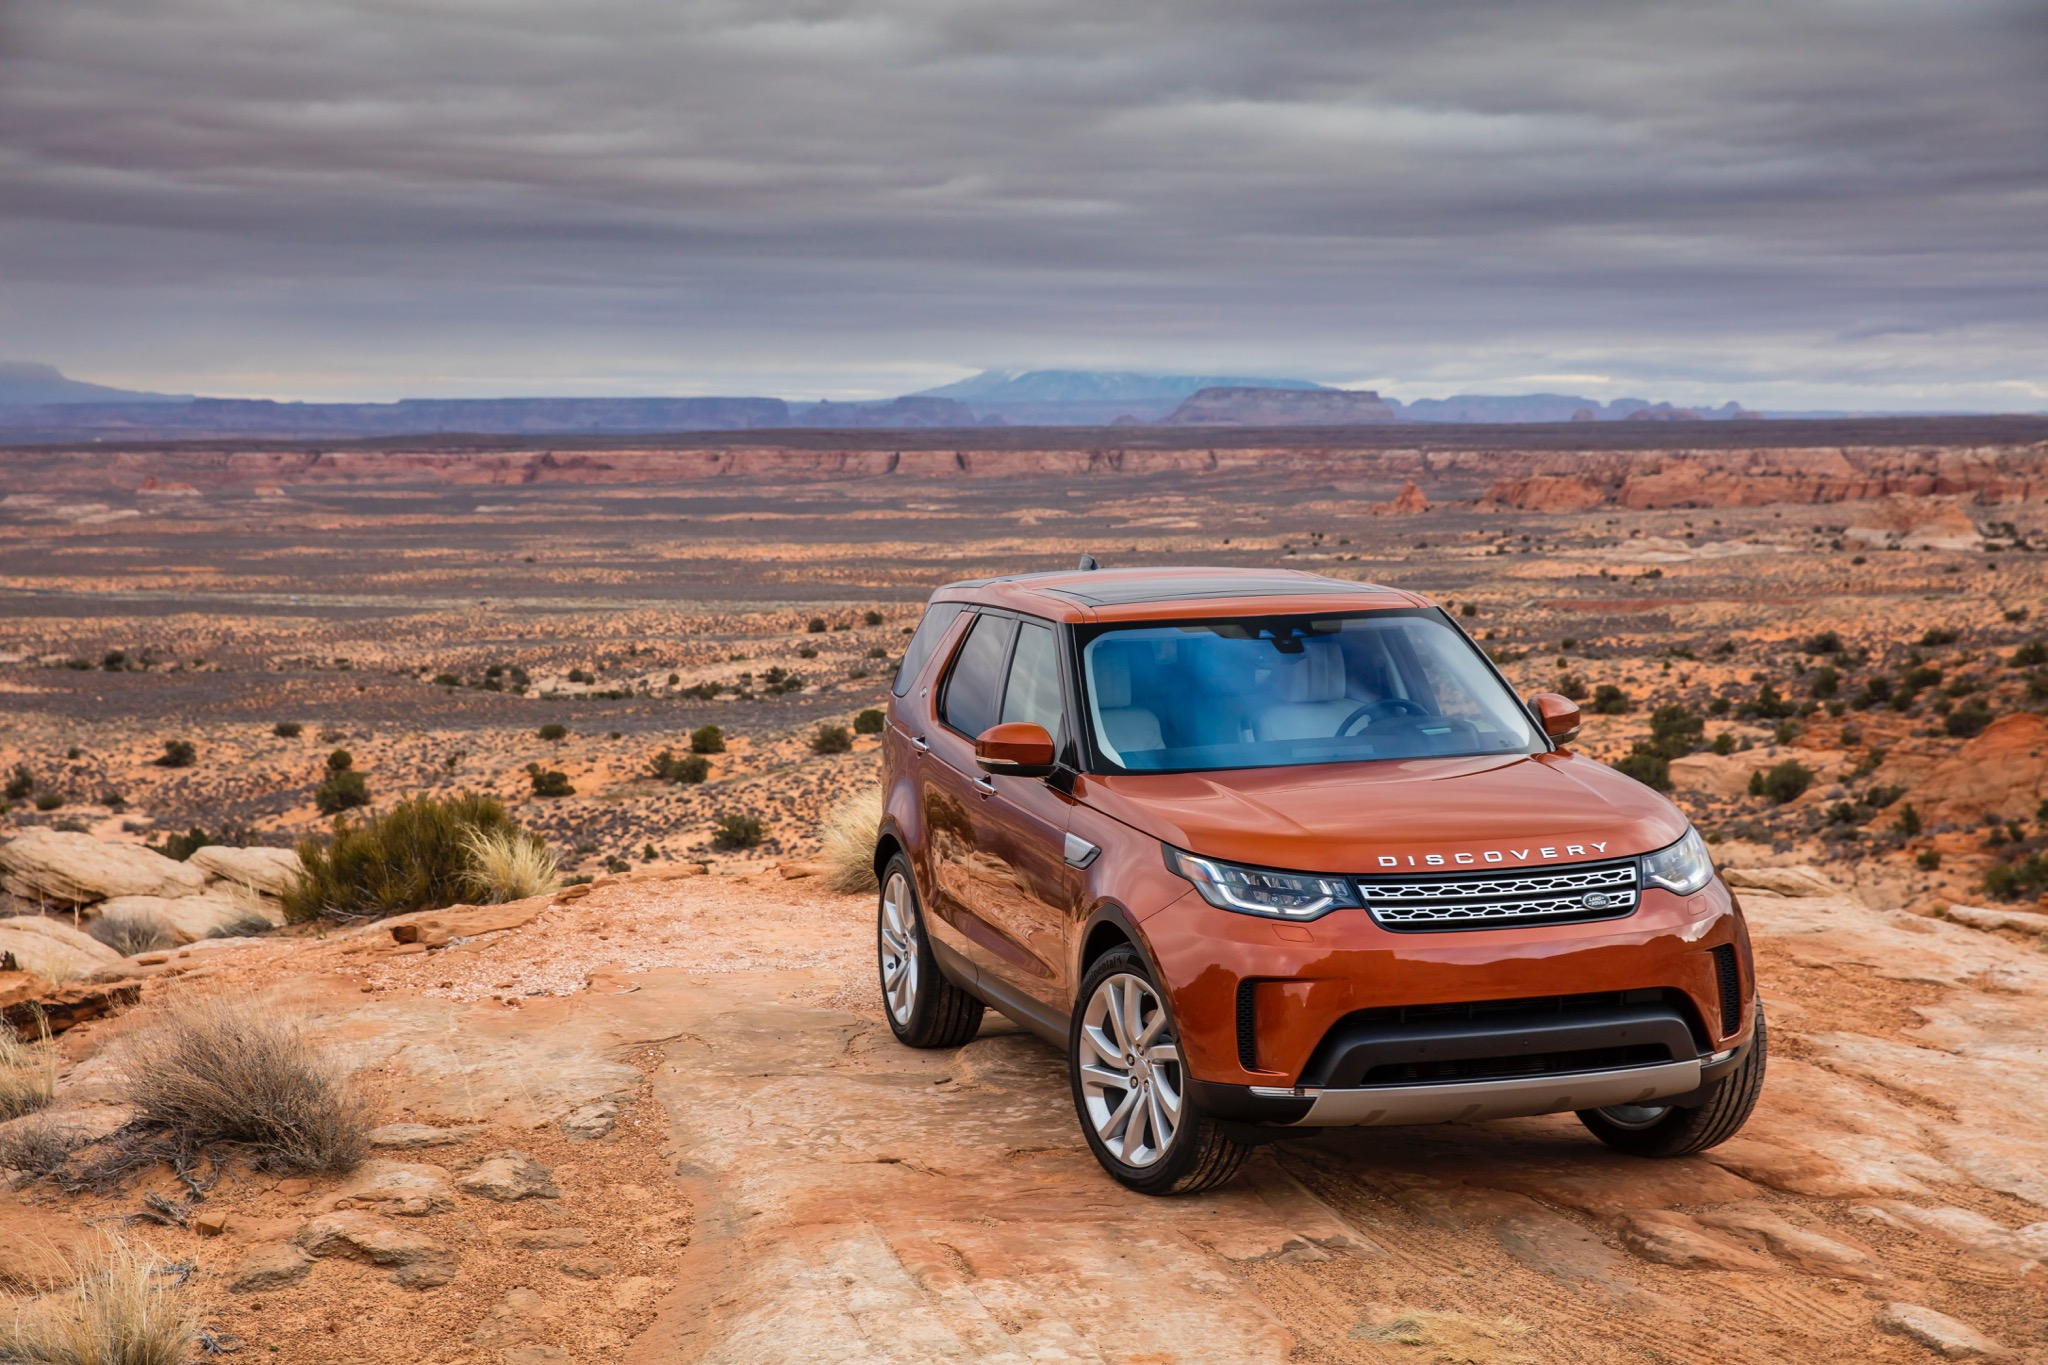 2017 land rover discovery review photos caradvice. Black Bedroom Furniture Sets. Home Design Ideas